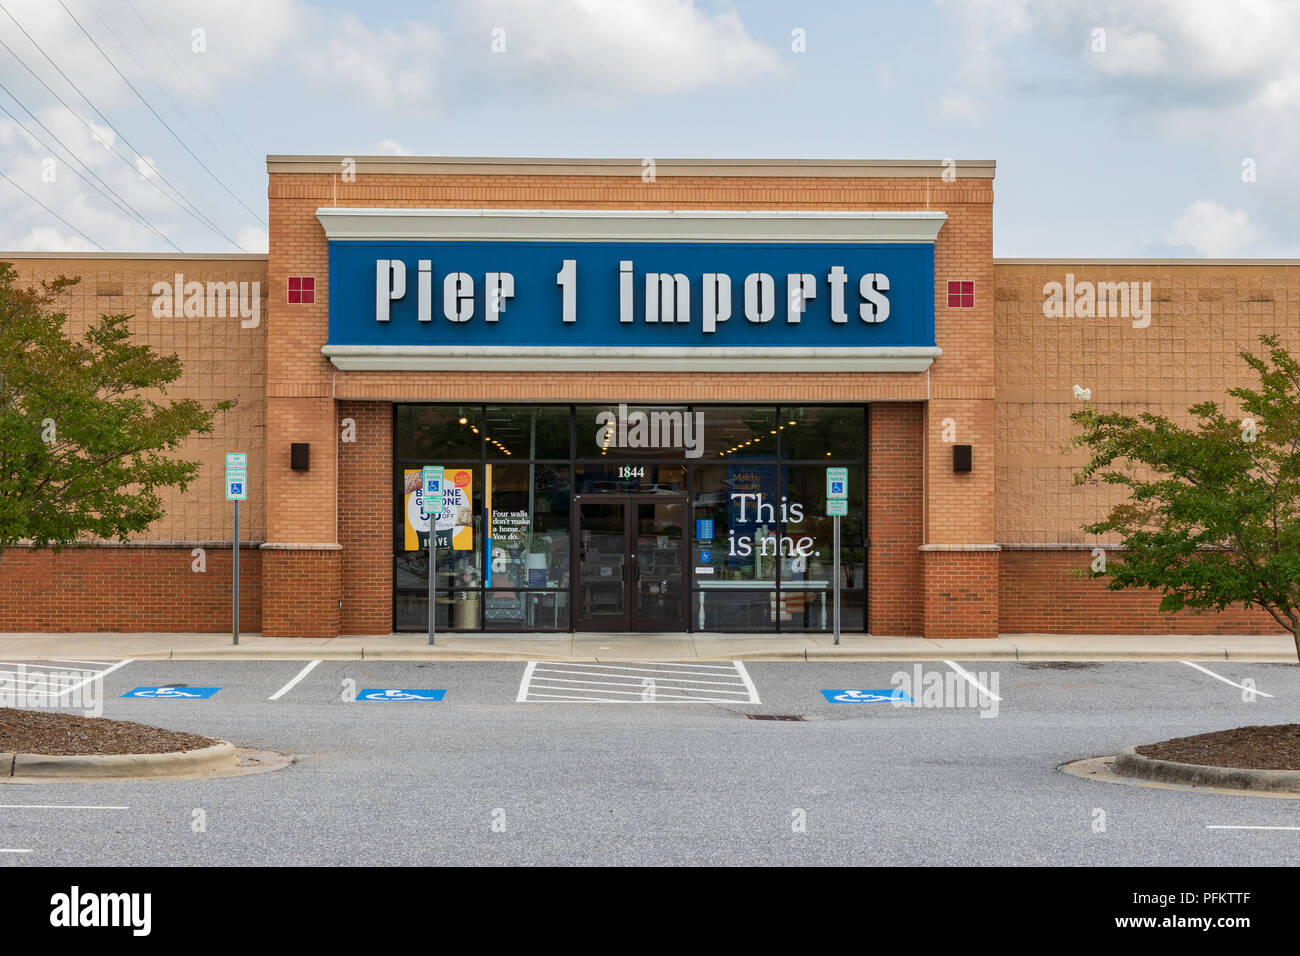 HICKORY, NC, USA-20 AUG 2018: A Pier 1 Imports store, a chain specializing in imported home furnishings and decor. - Stock Image